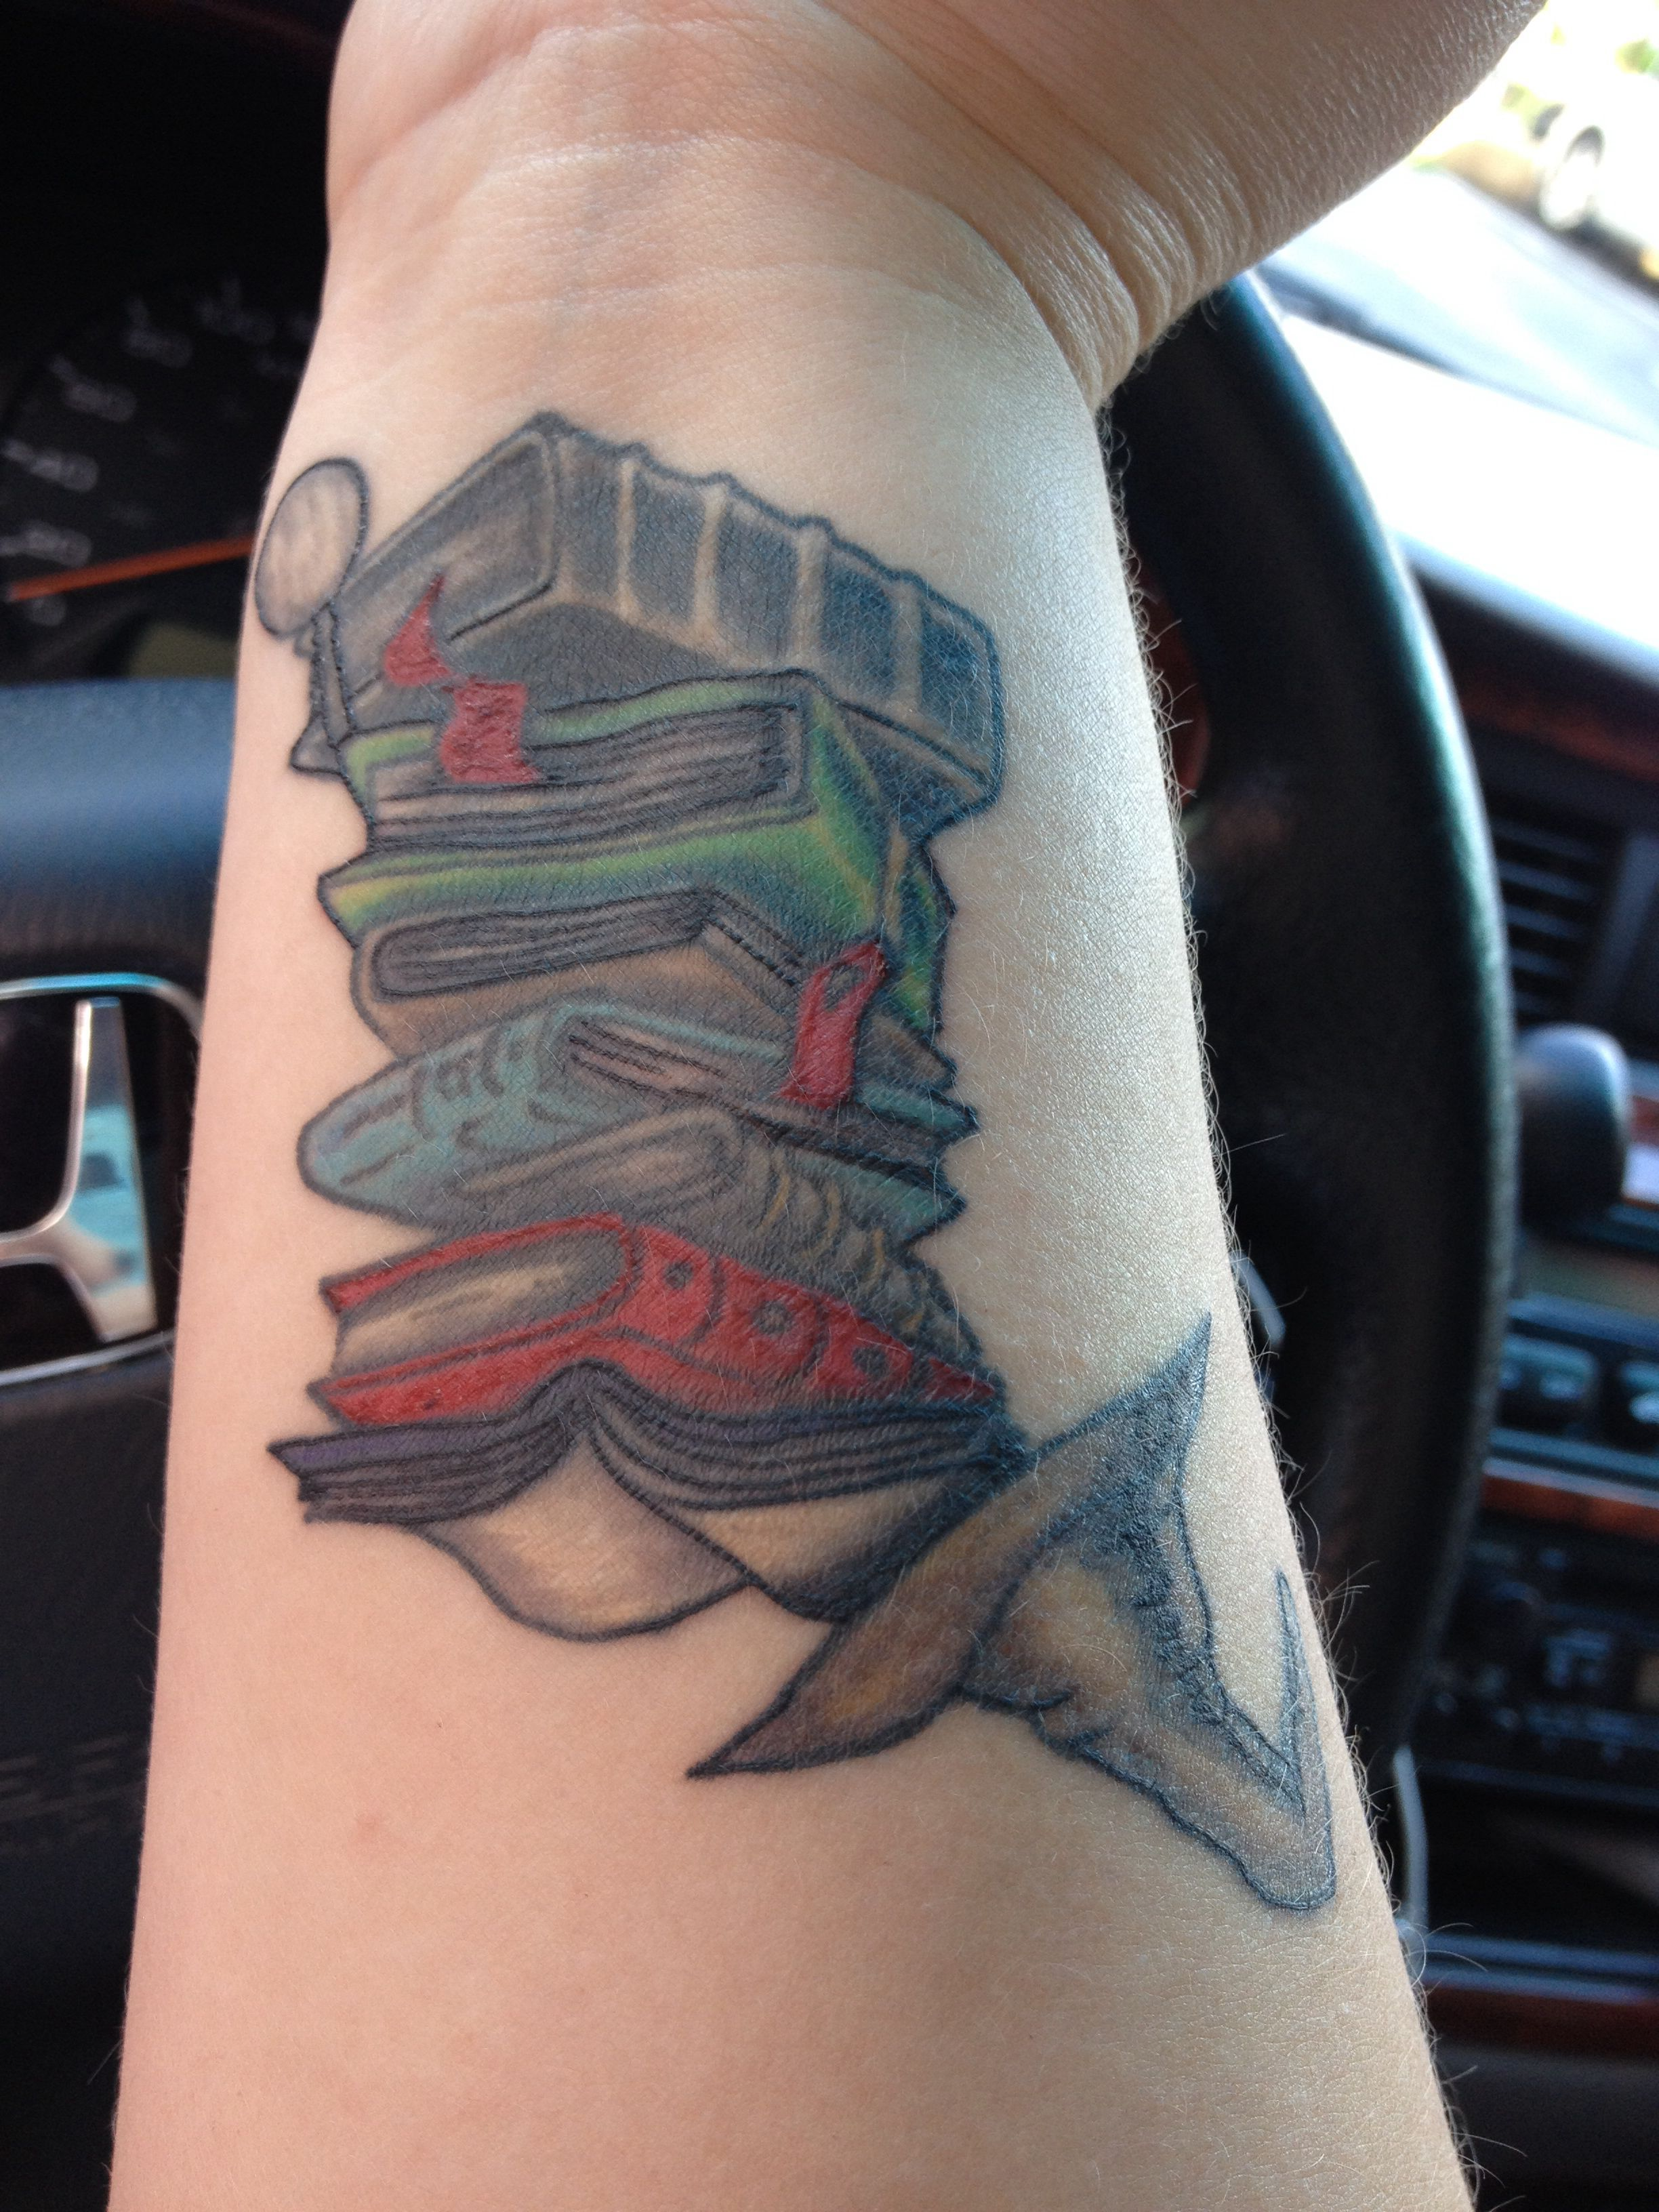 My Awesome Tattoo Stack Of Books For My Obsession With